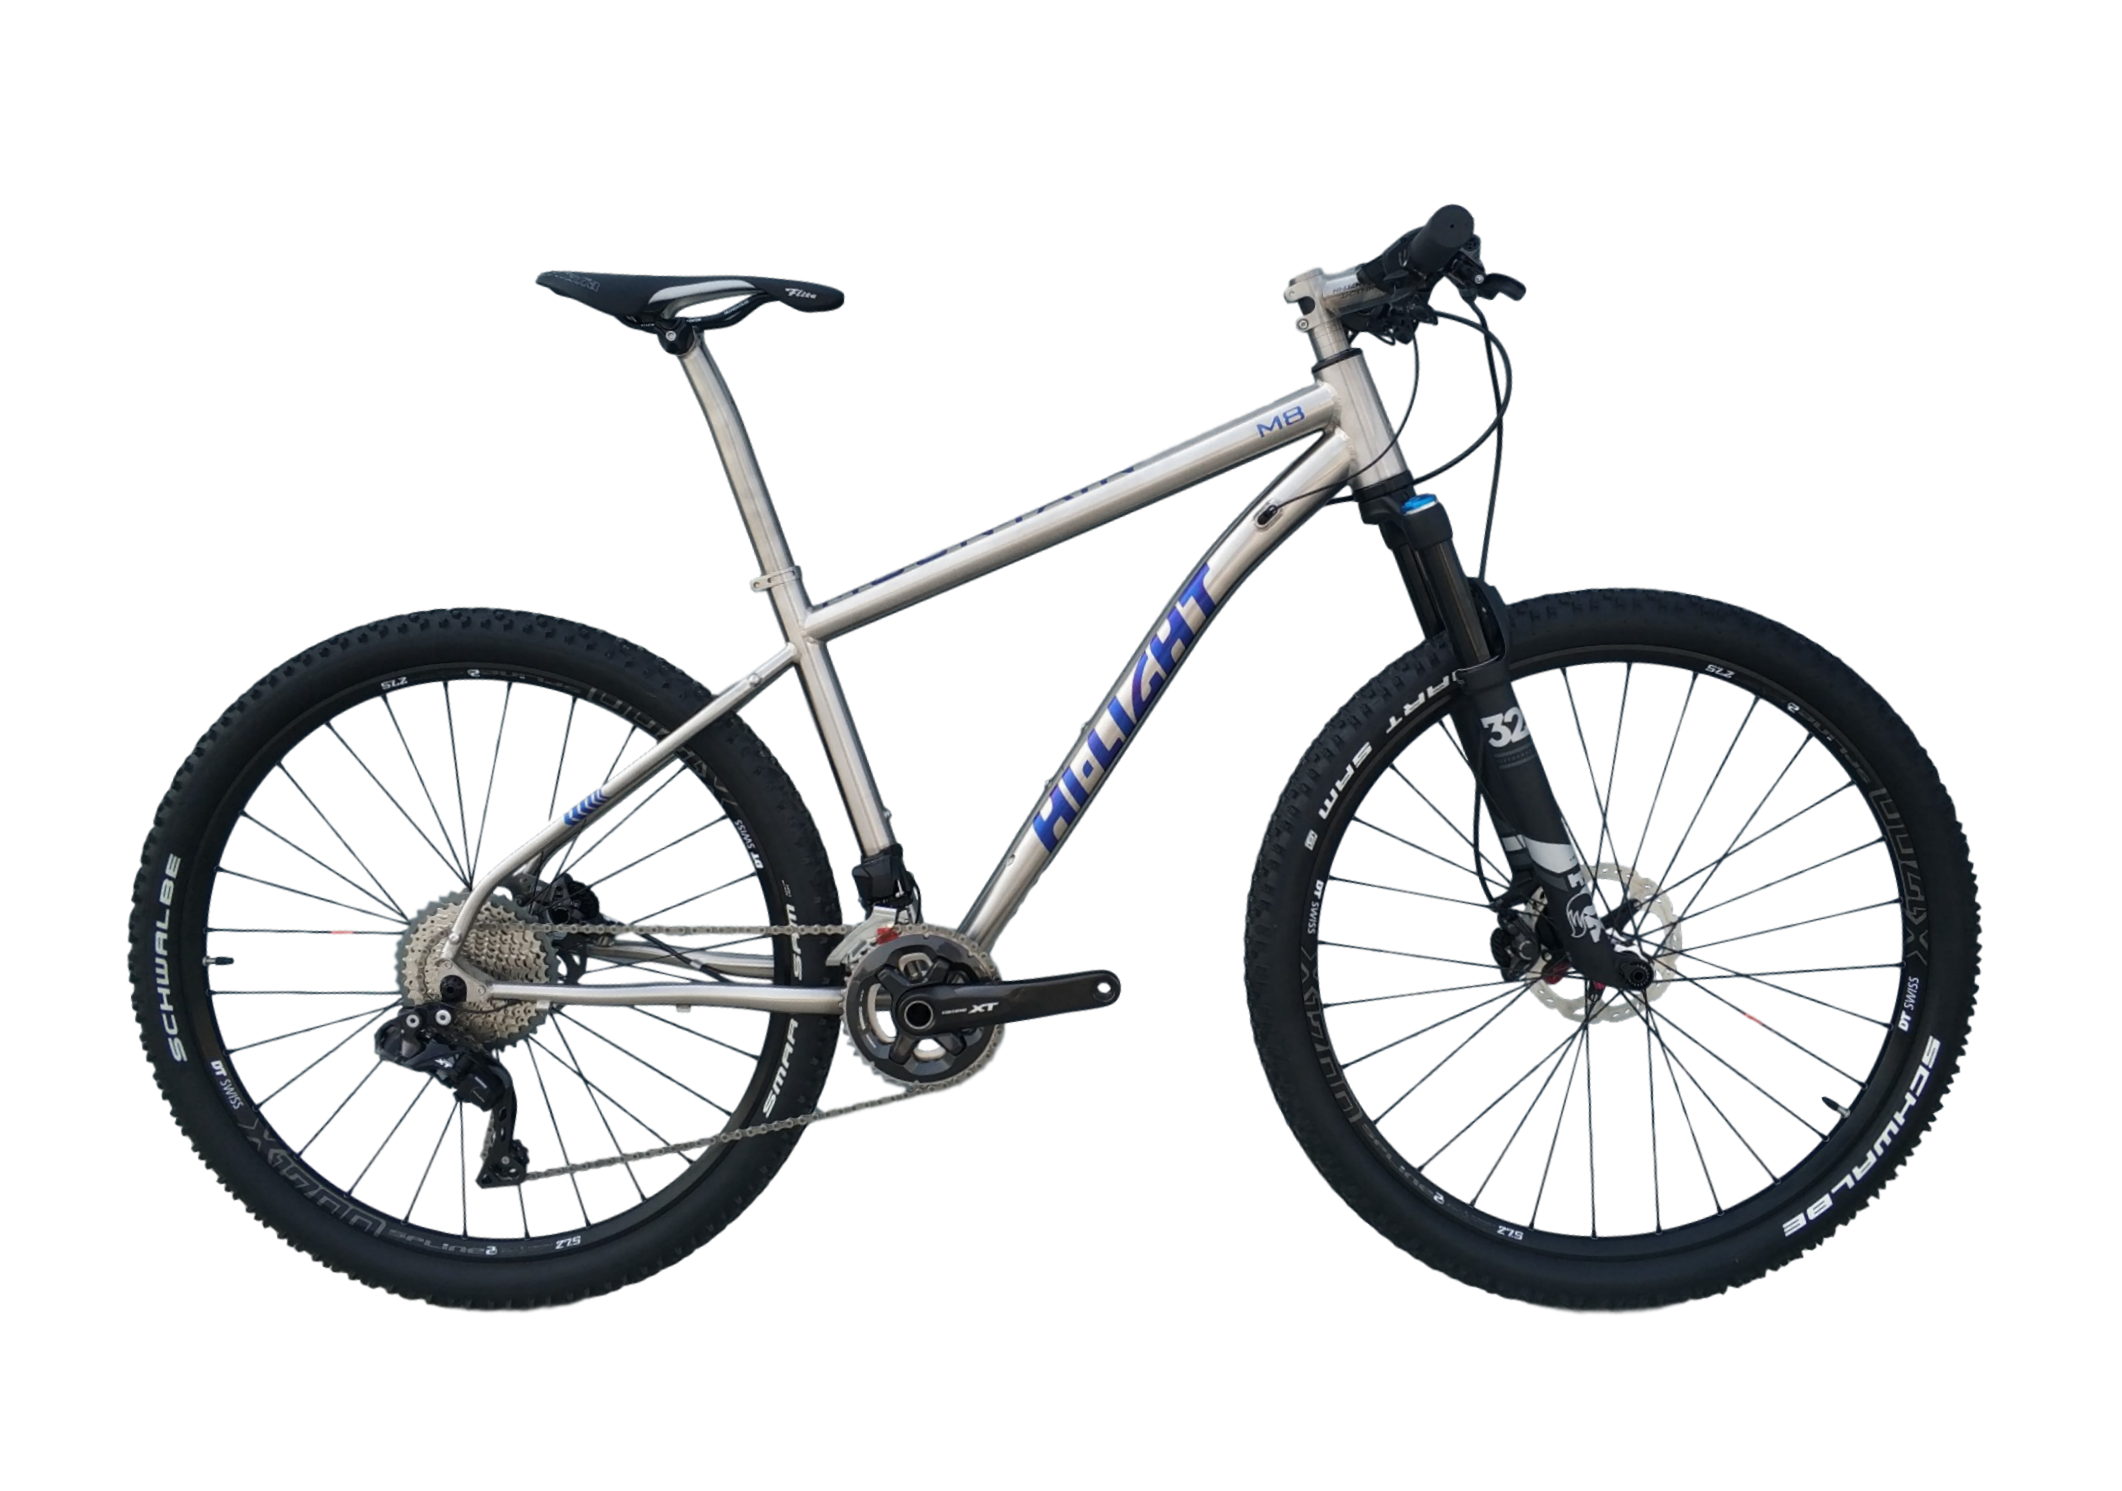 M8 DI2 TITANIUM MOUNTAIN BIKE